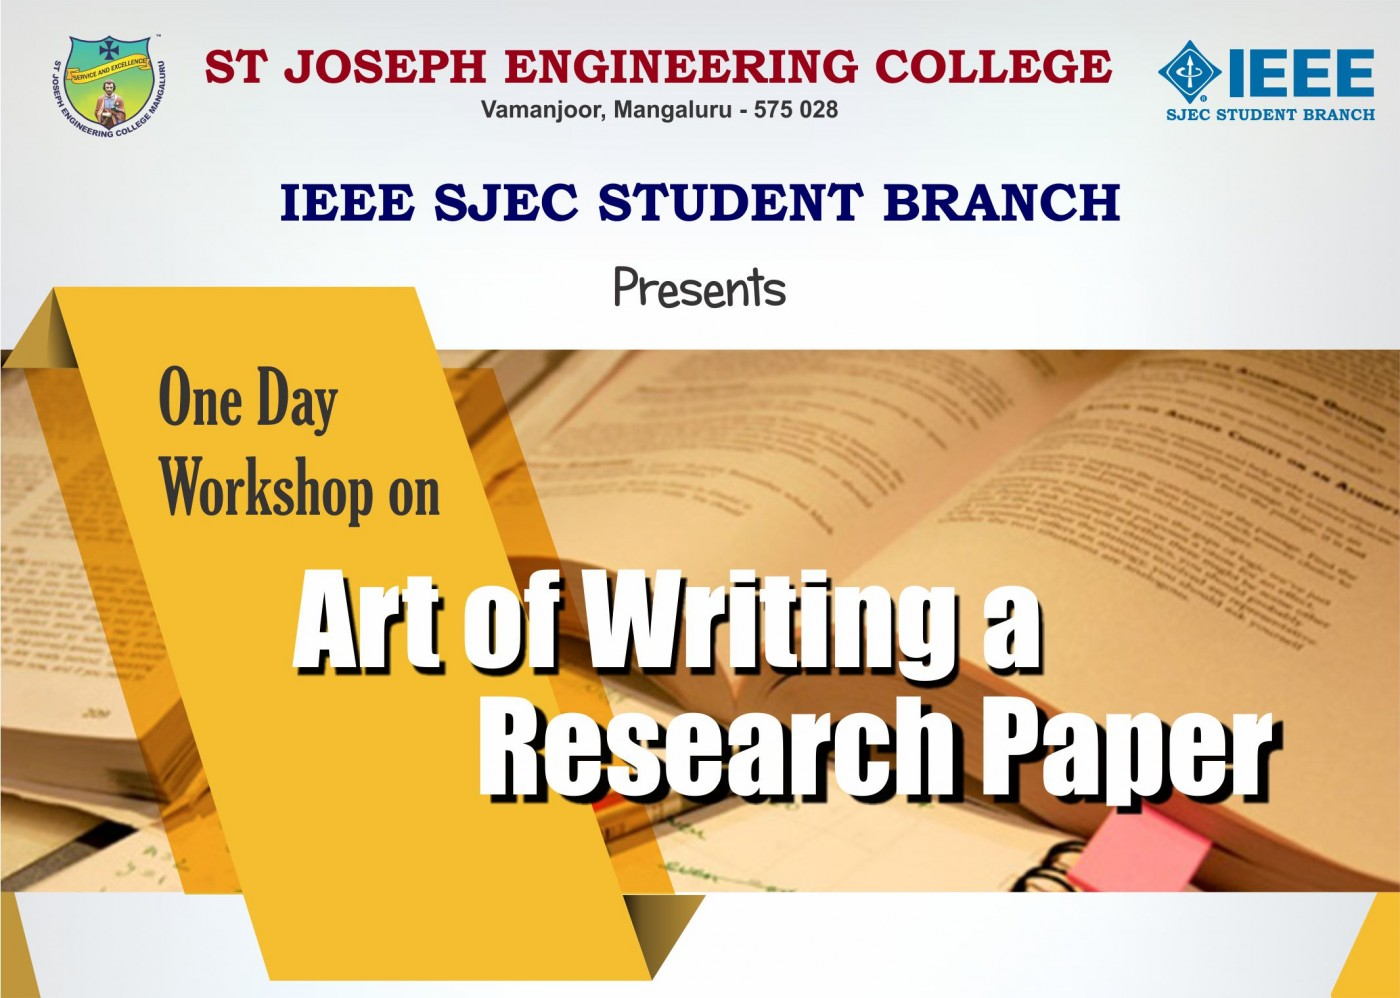 005 Research Paper About Writing Workshop Rare Expository Articles On Skills Pdf Creative 1400